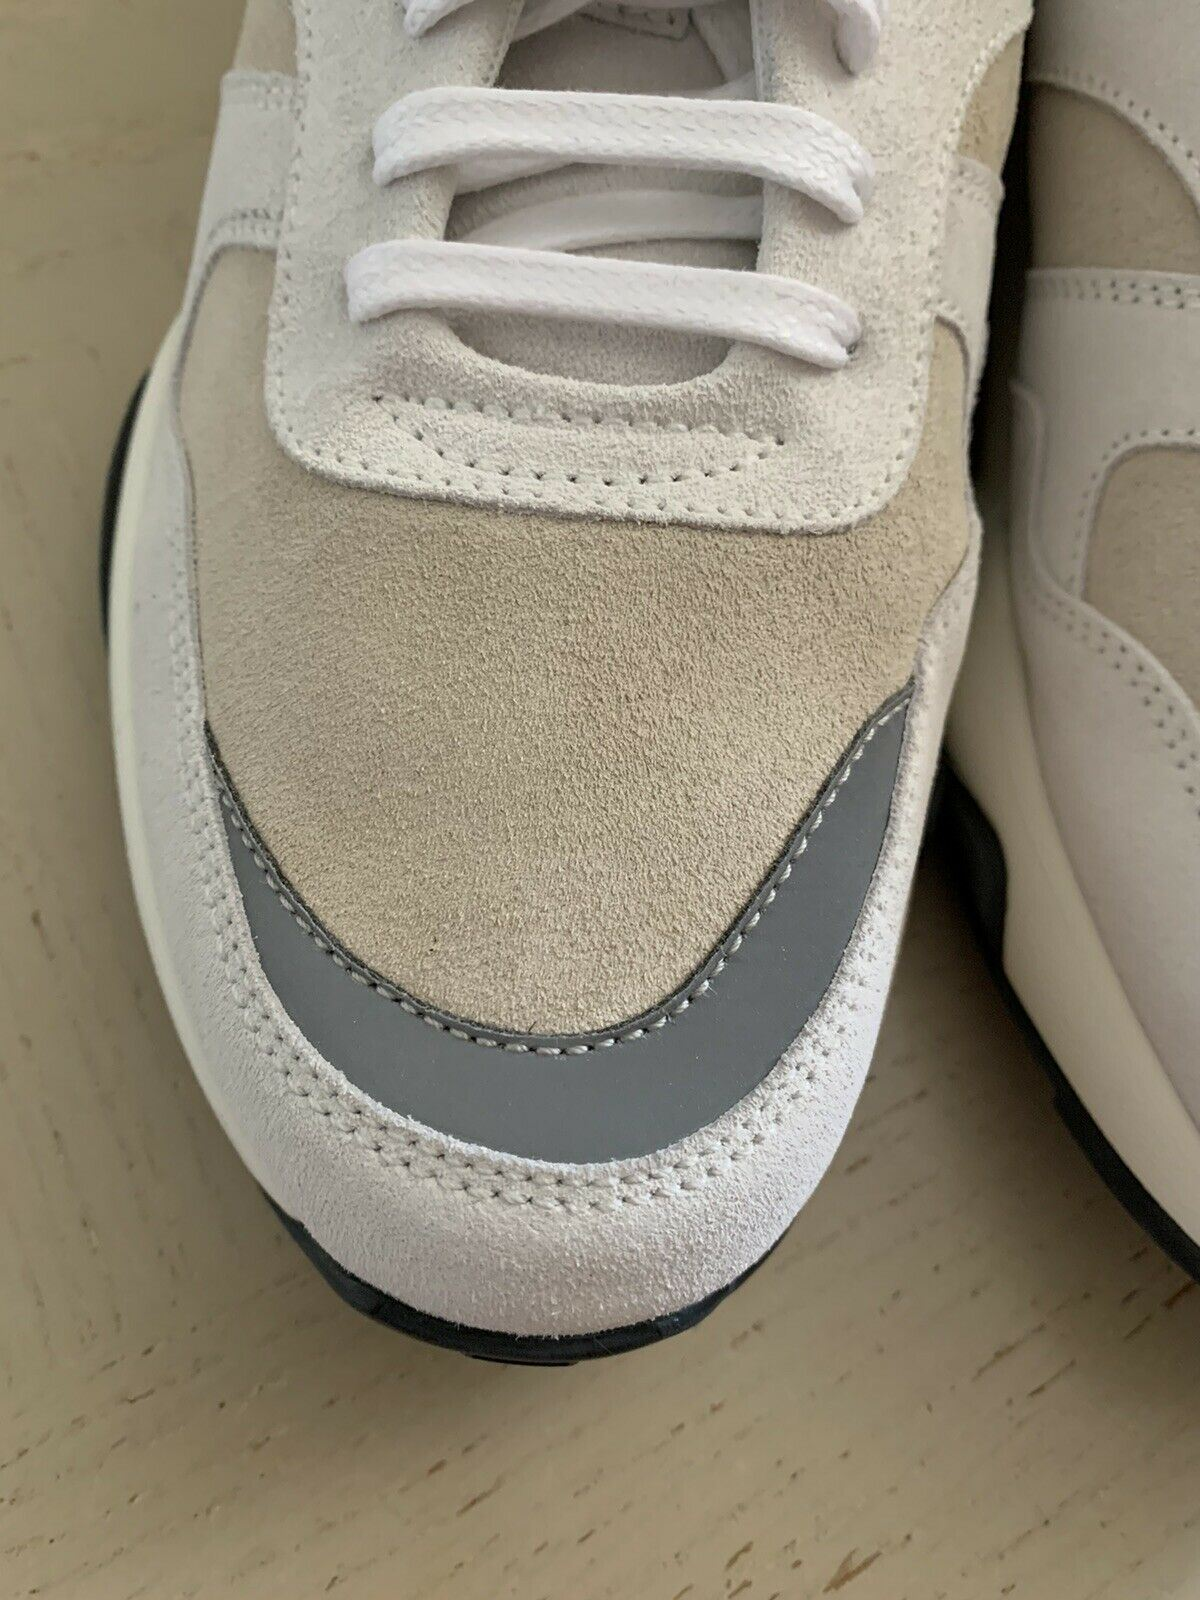 NIB $595 Z Zegna Men's Leather/Suede Sneakers Beije/White 10.5 US Italy